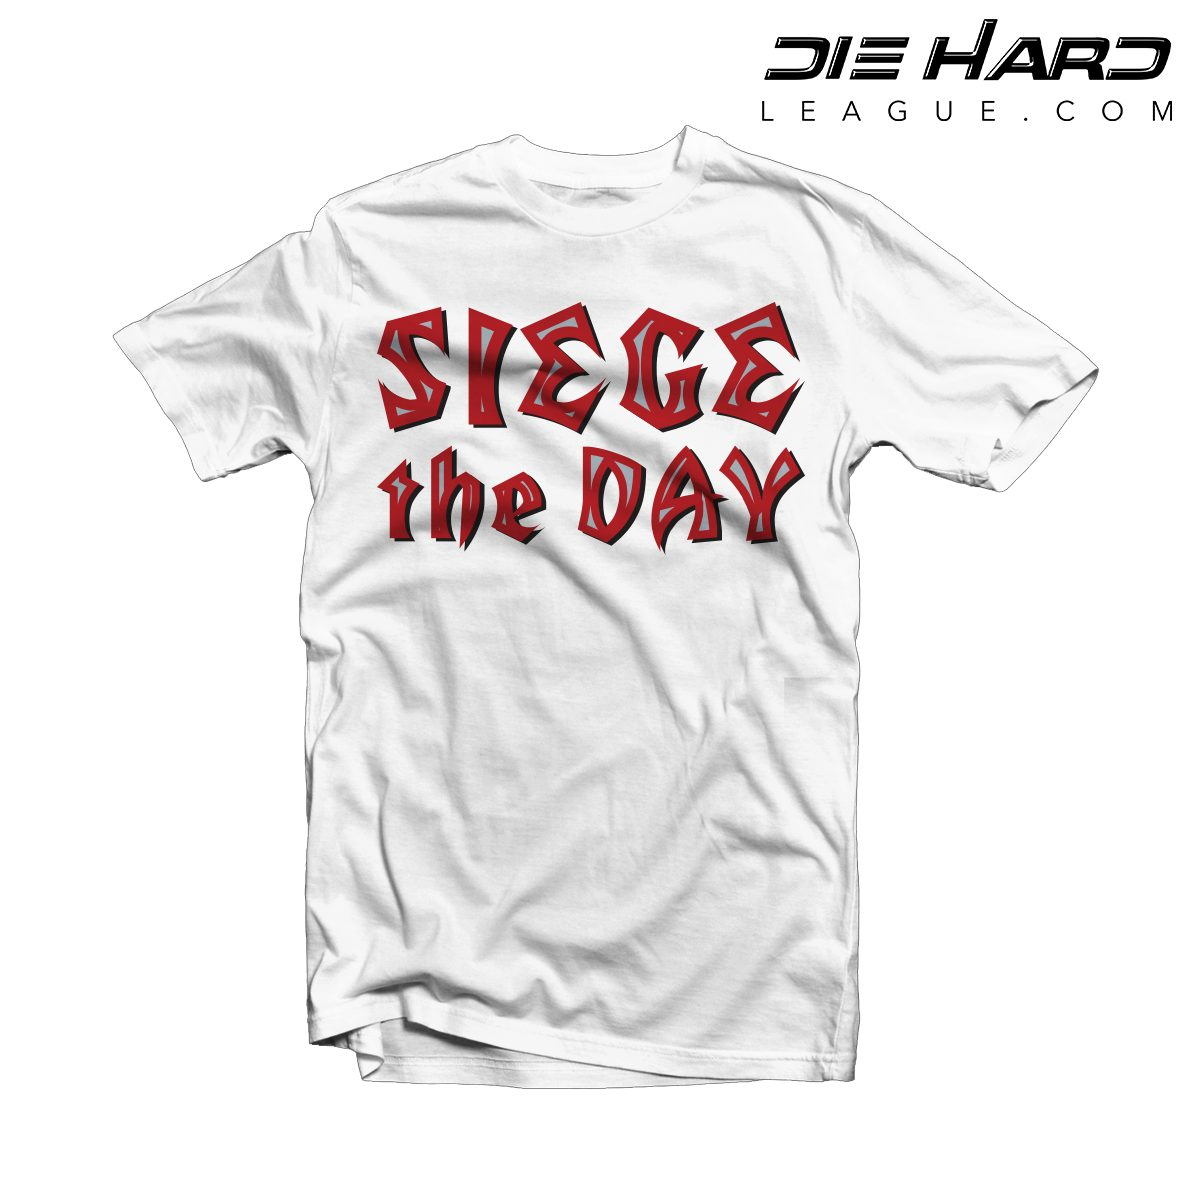 bf0ffe316 Tampa Bay Buccaneers T Shirt Siege the Day White Tee